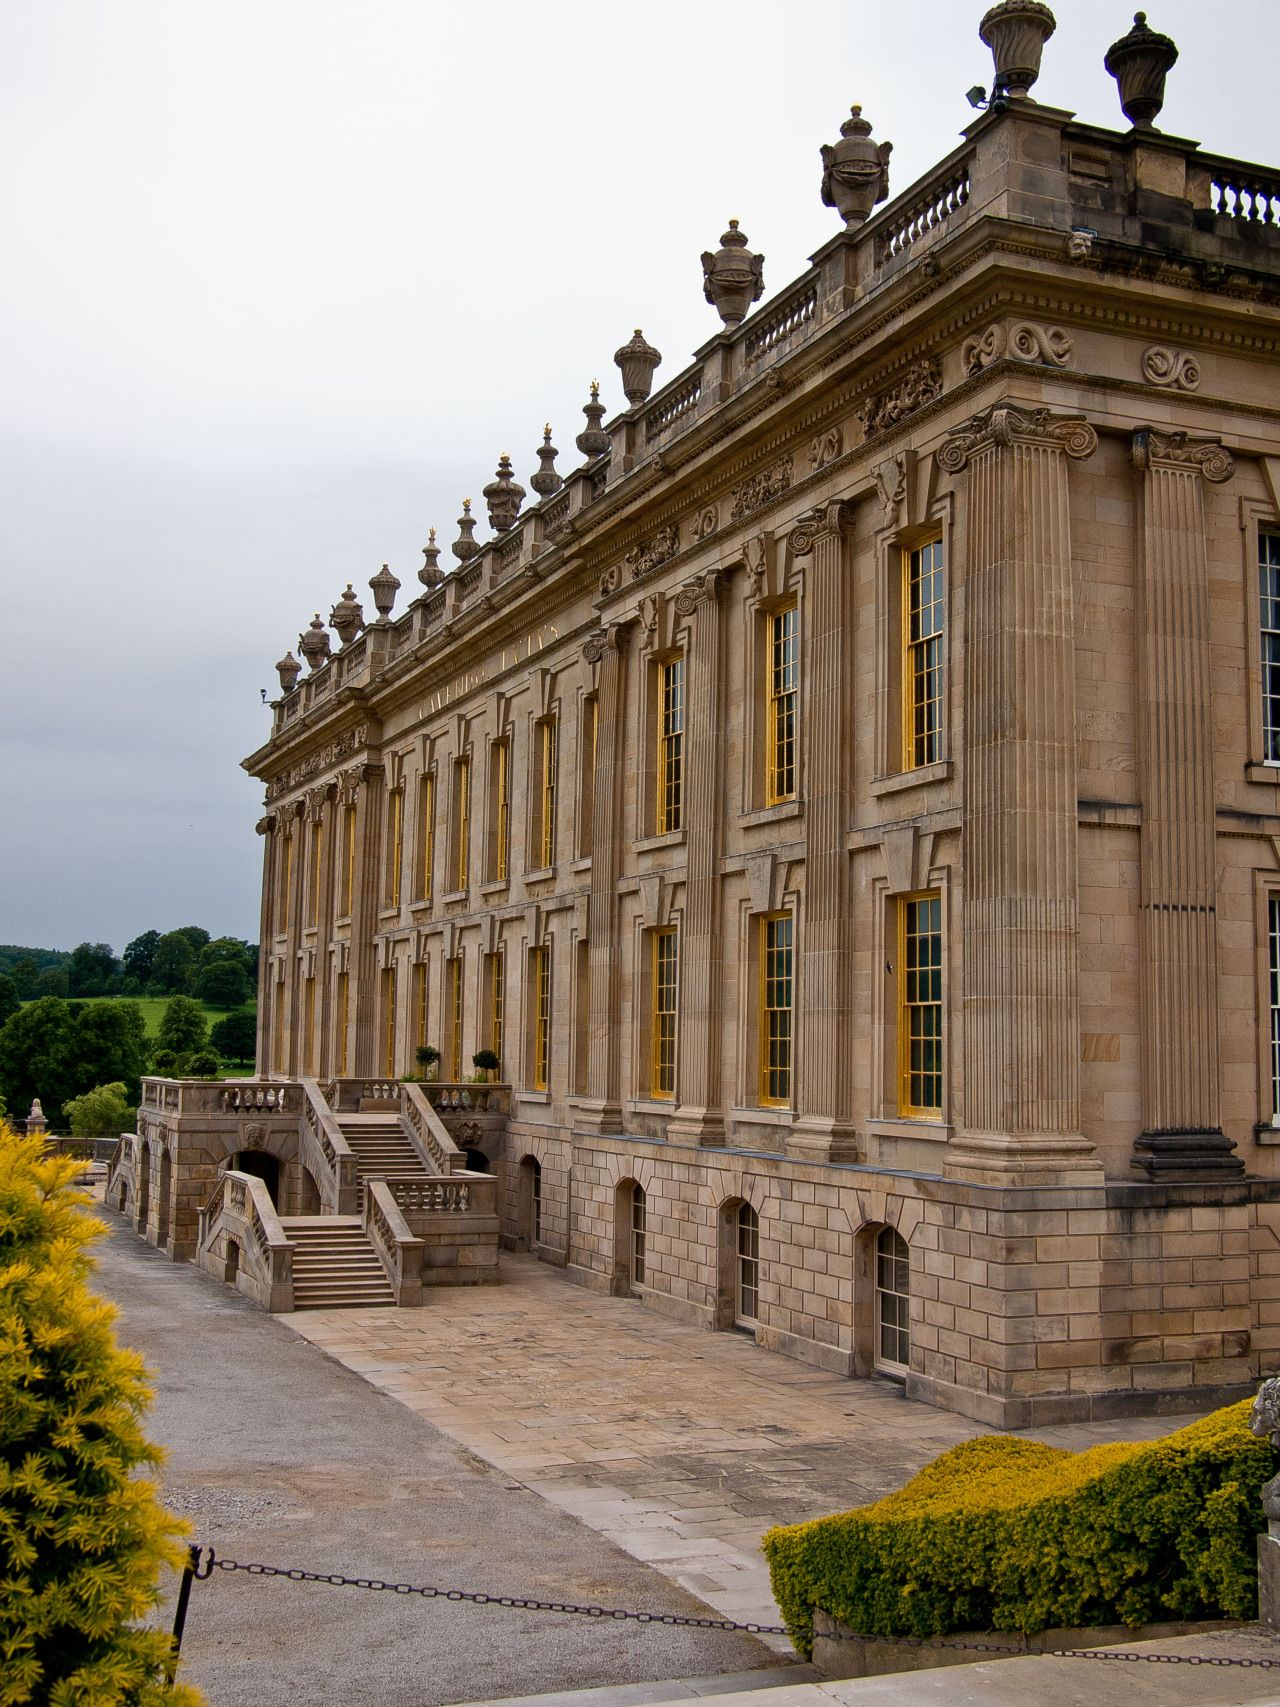 Chatsworth House History: Chatsworth House In Derbyshire,England, Seat Of The Dukes